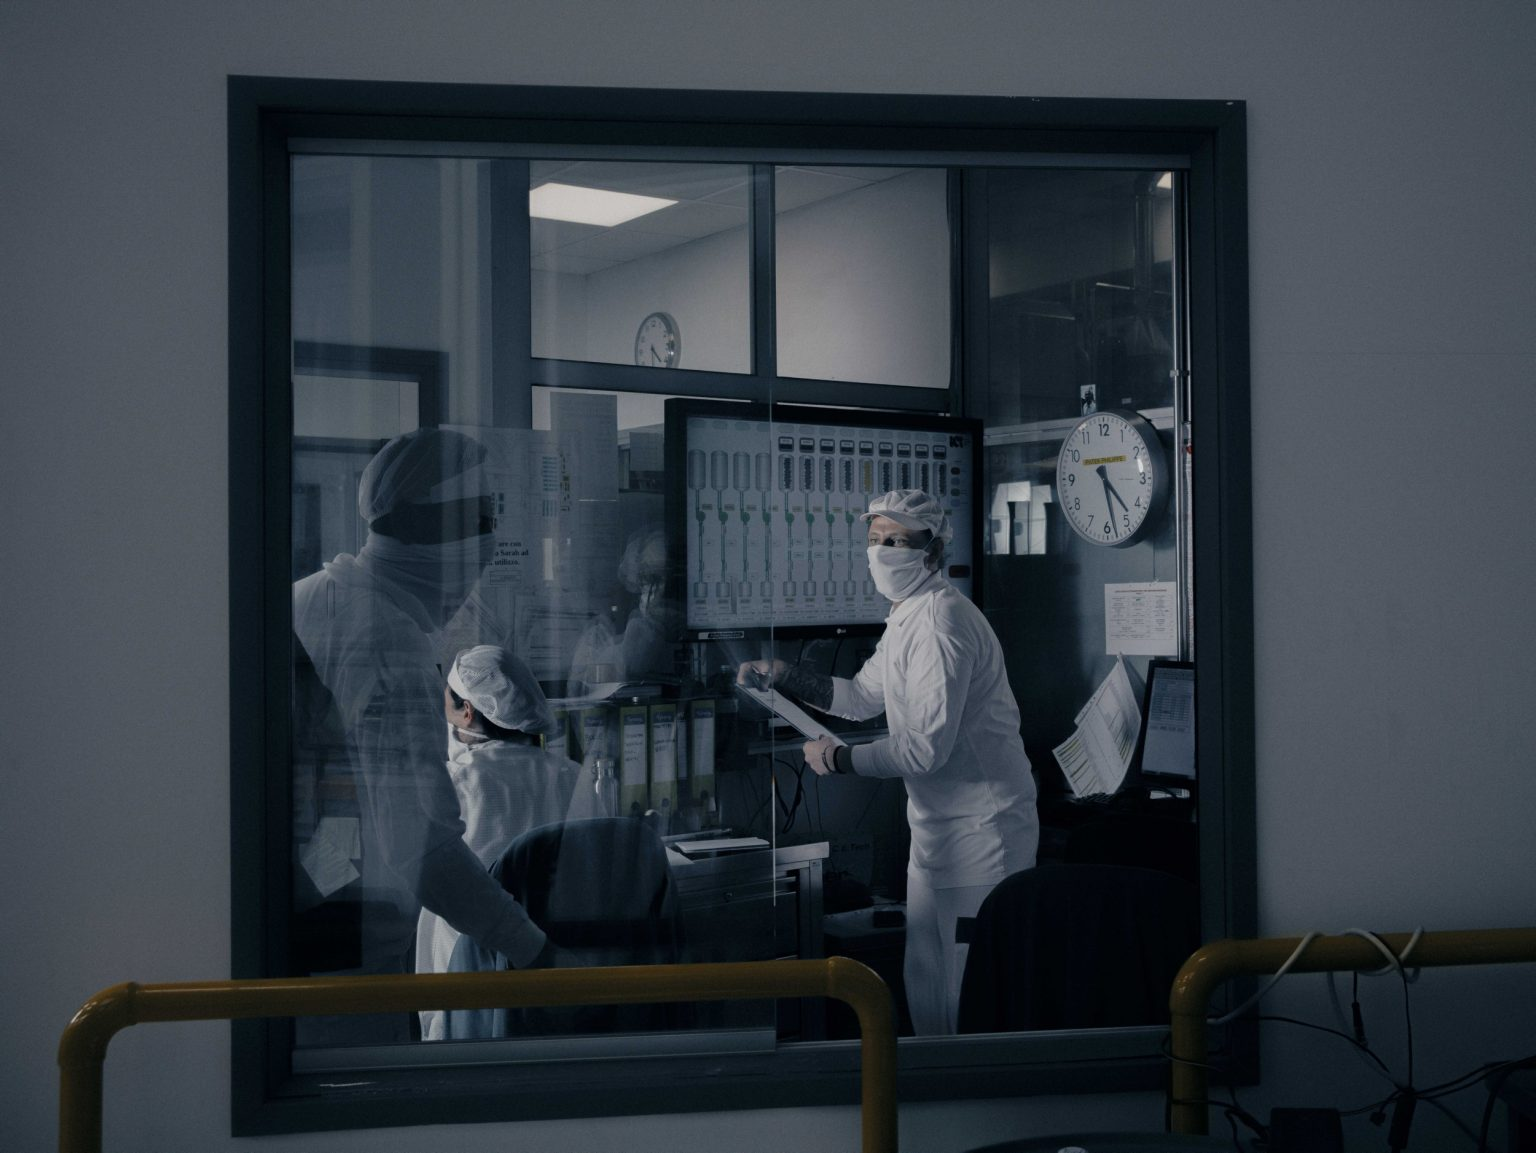 Inside ICS S.p.a. (Industrie Cosmetiche Riunite), in Lodi, Lombardy.  ICS started producing hand disinfectant on behalf of the luxury brand Bulgari in response to the COVID 19 outbreak. Italy, April, 2020